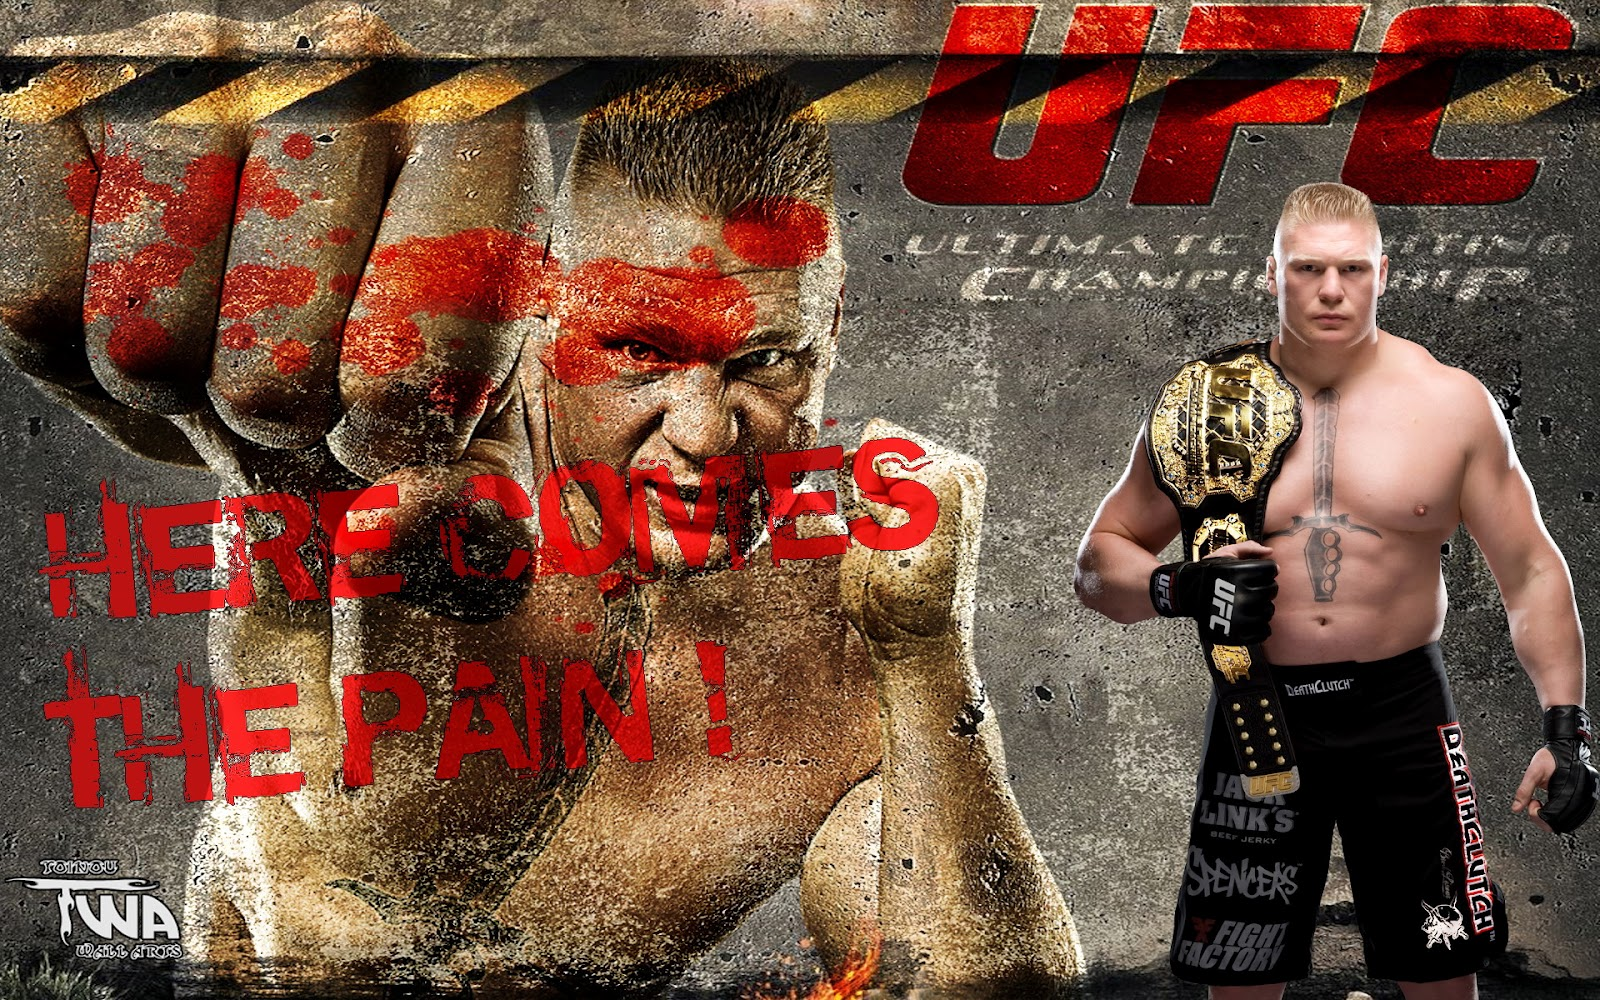 wallpapers brock lesnar wallpaper brock lesnar wallpaper brock lesnar 1600x1000